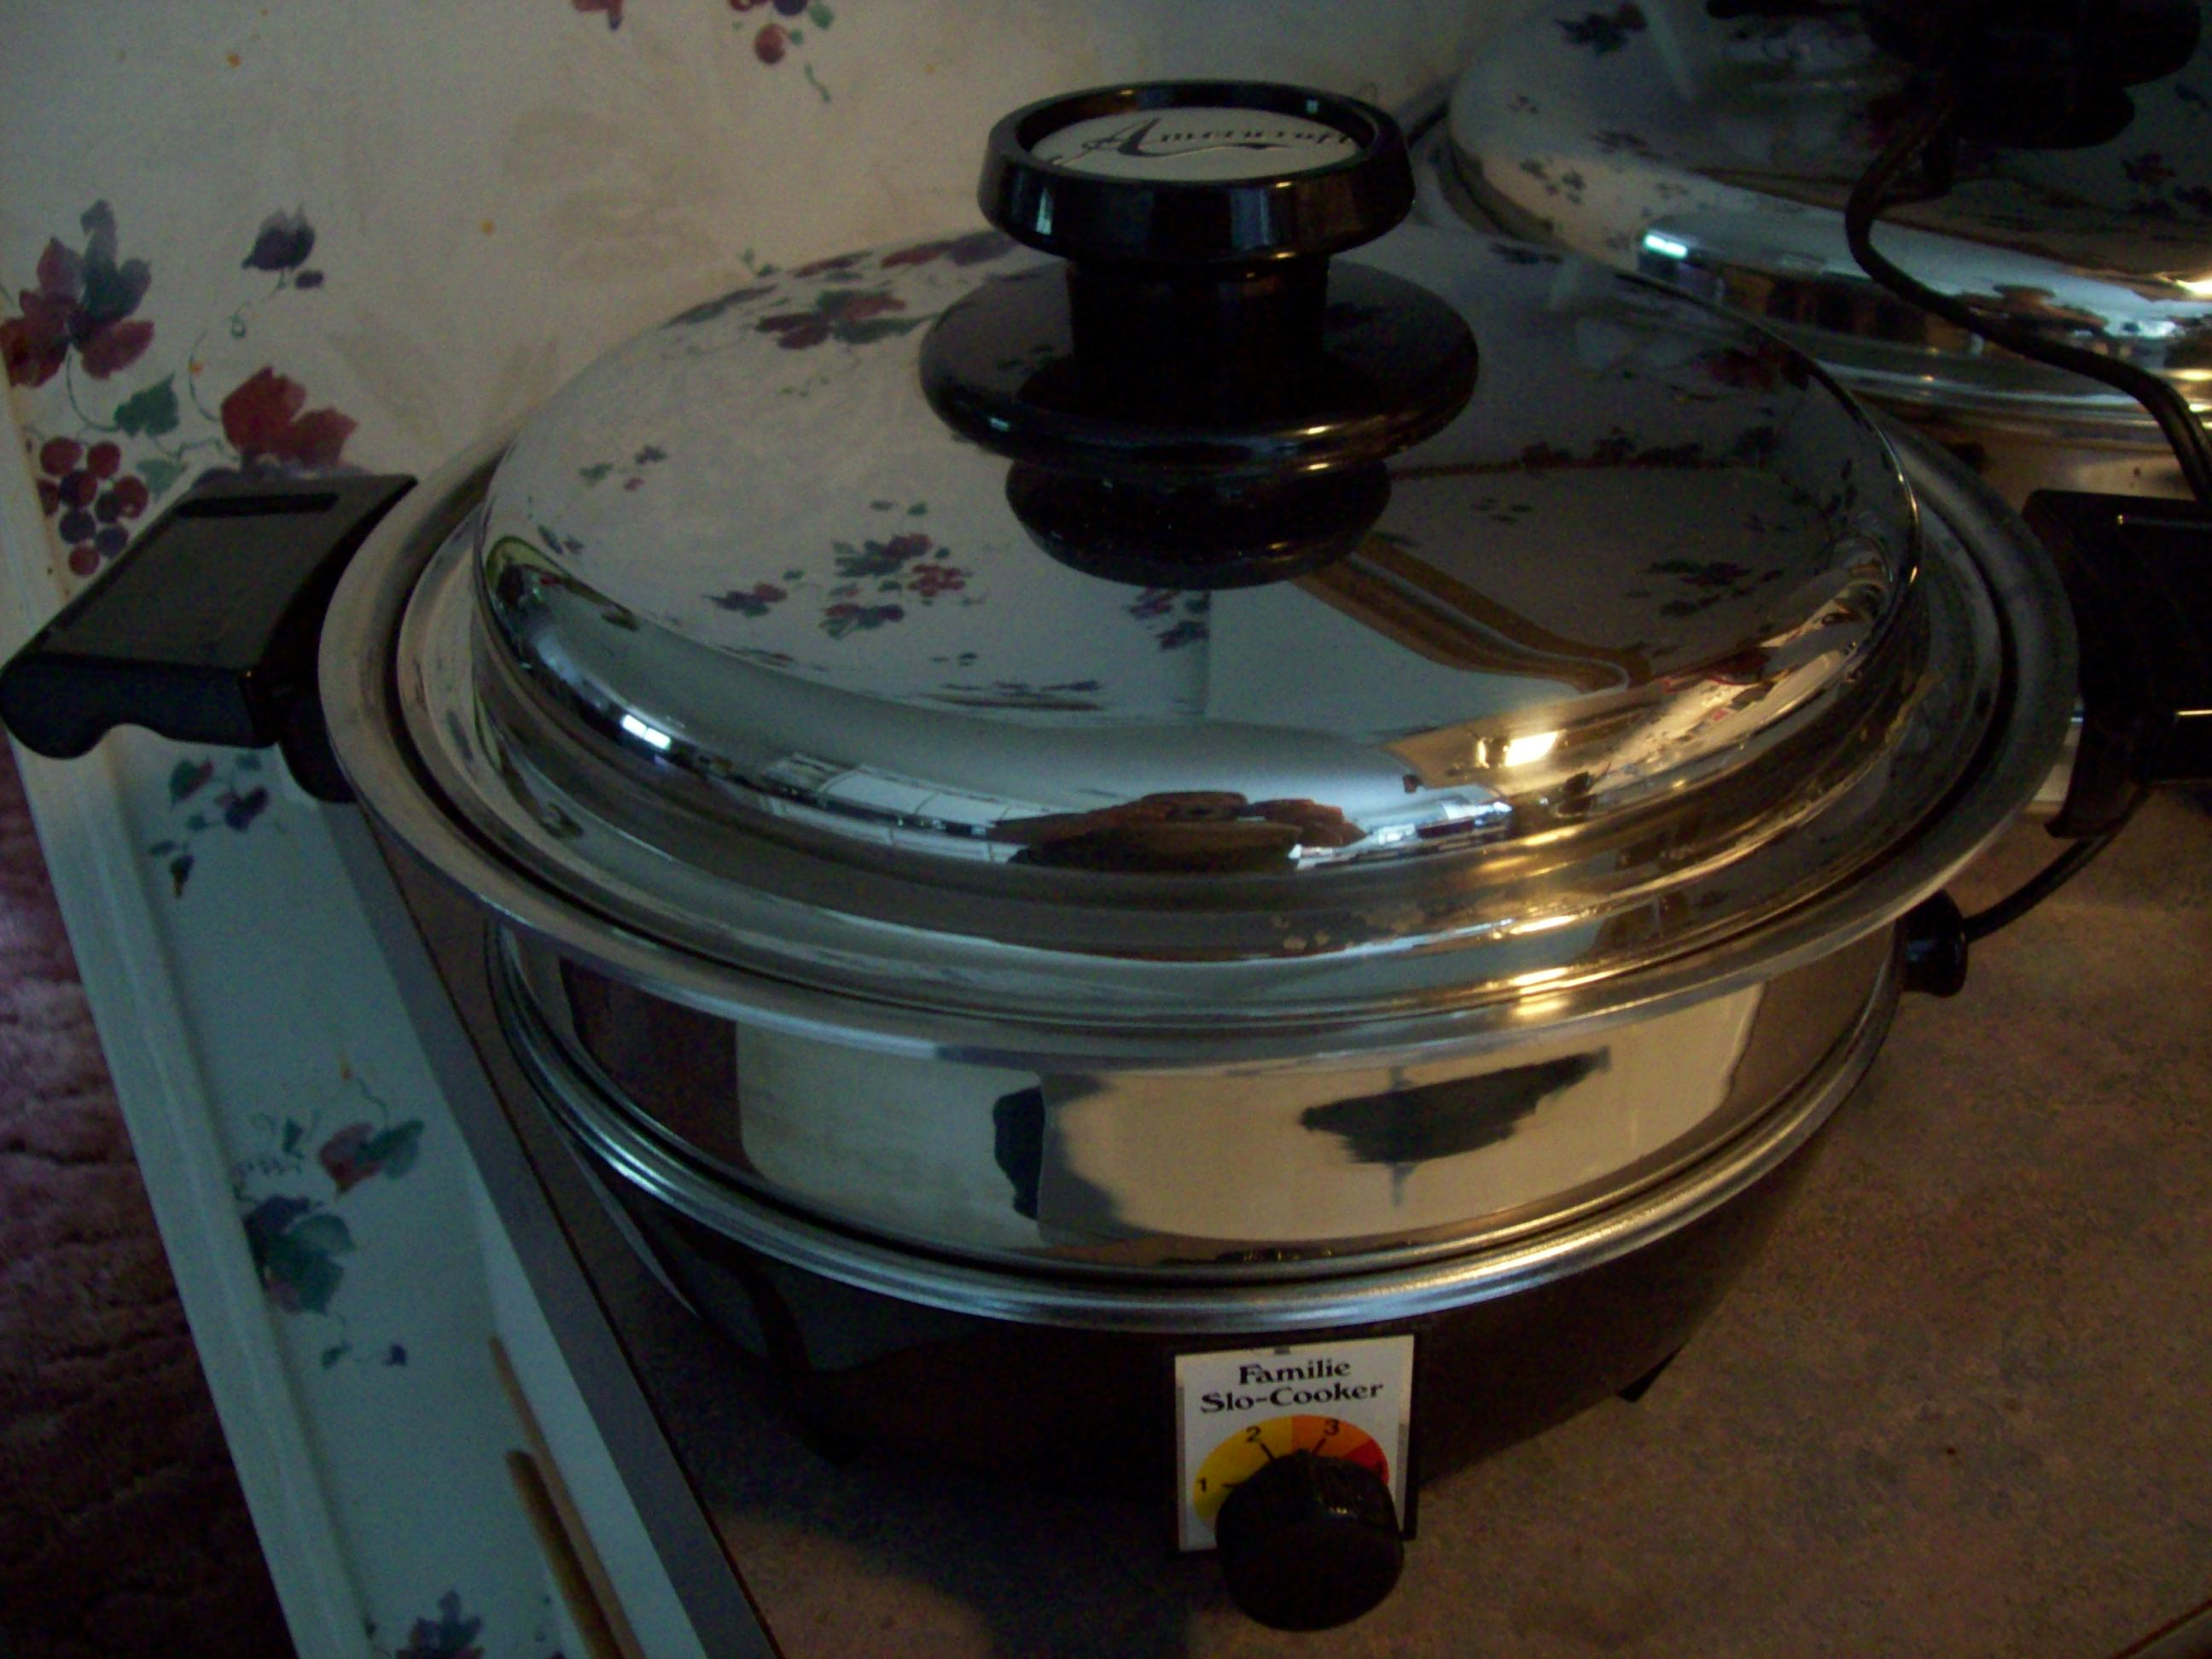 The 2QT Gourmet Slo-Cooker